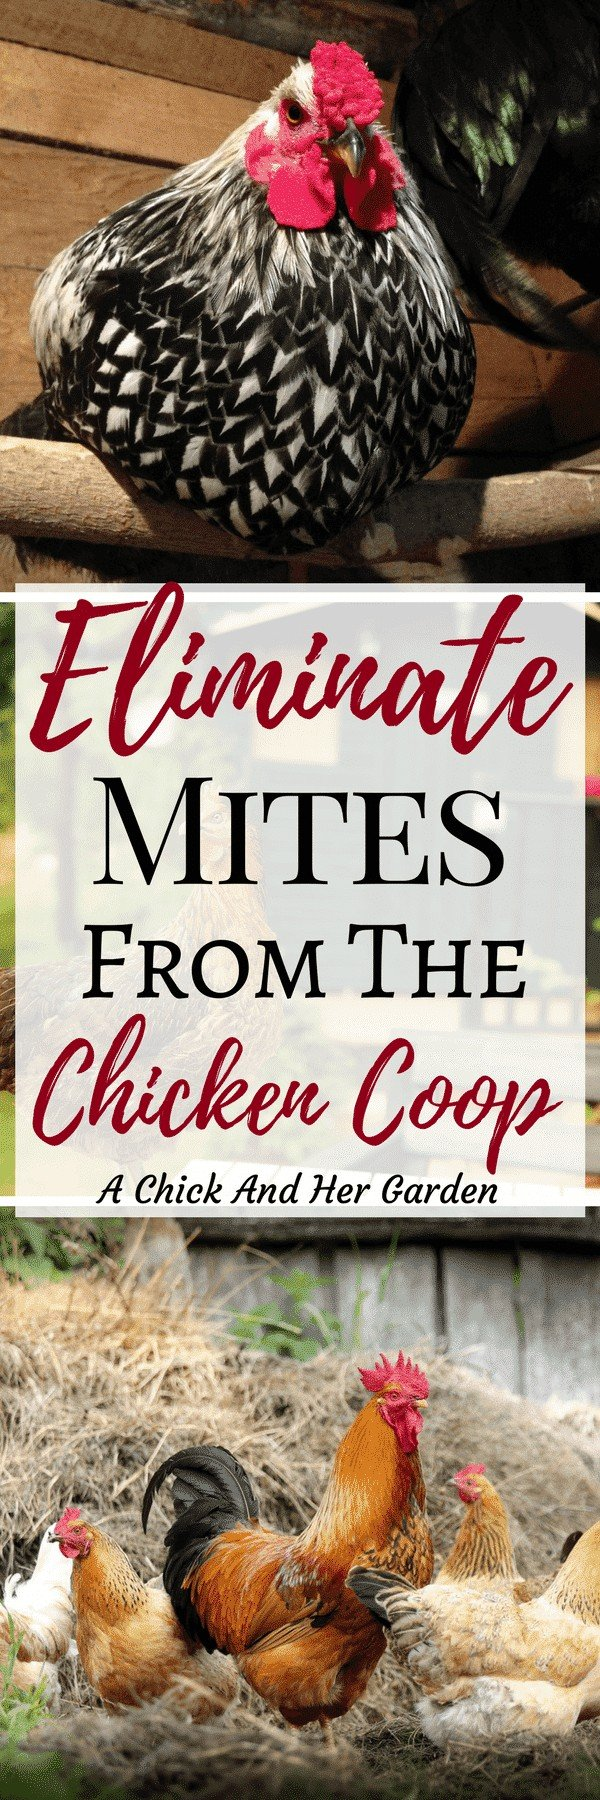 When you find mites in the coop your skin just crawls! It can be such a huge pain, but these steps for how to treat your chicken coop for mites, will get rid of them for good! #chickens #backyardchickens #selfsufficiency #homesteading #raisingchickens